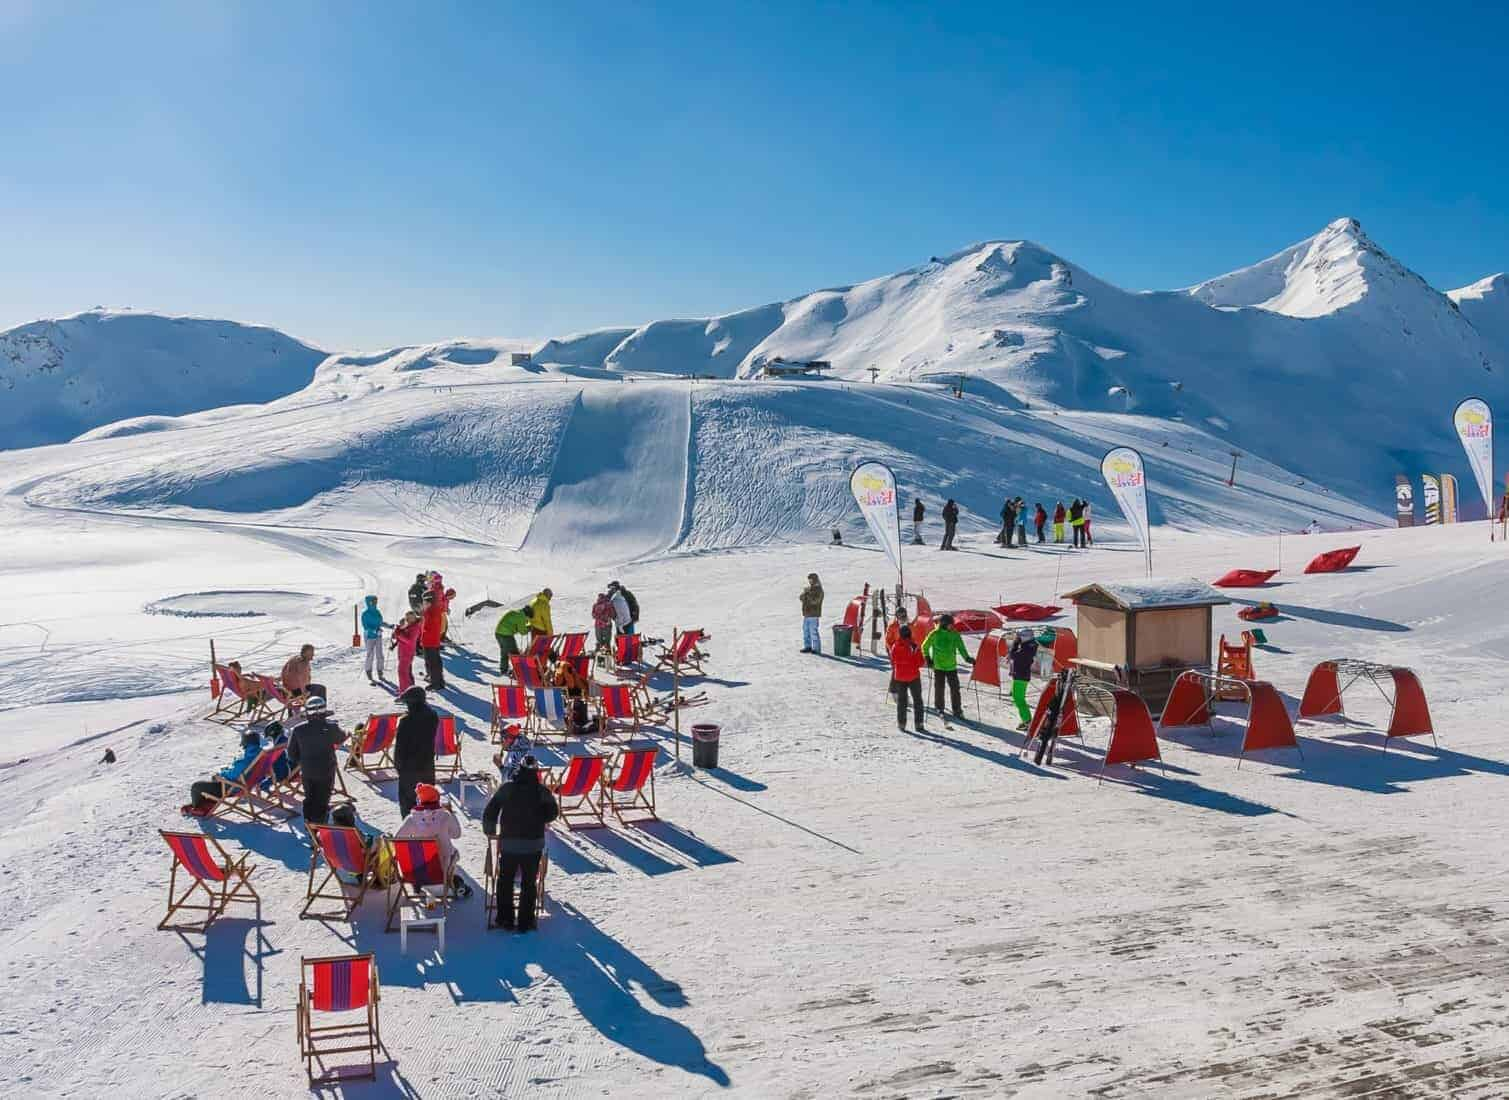 Ski resort Livigno